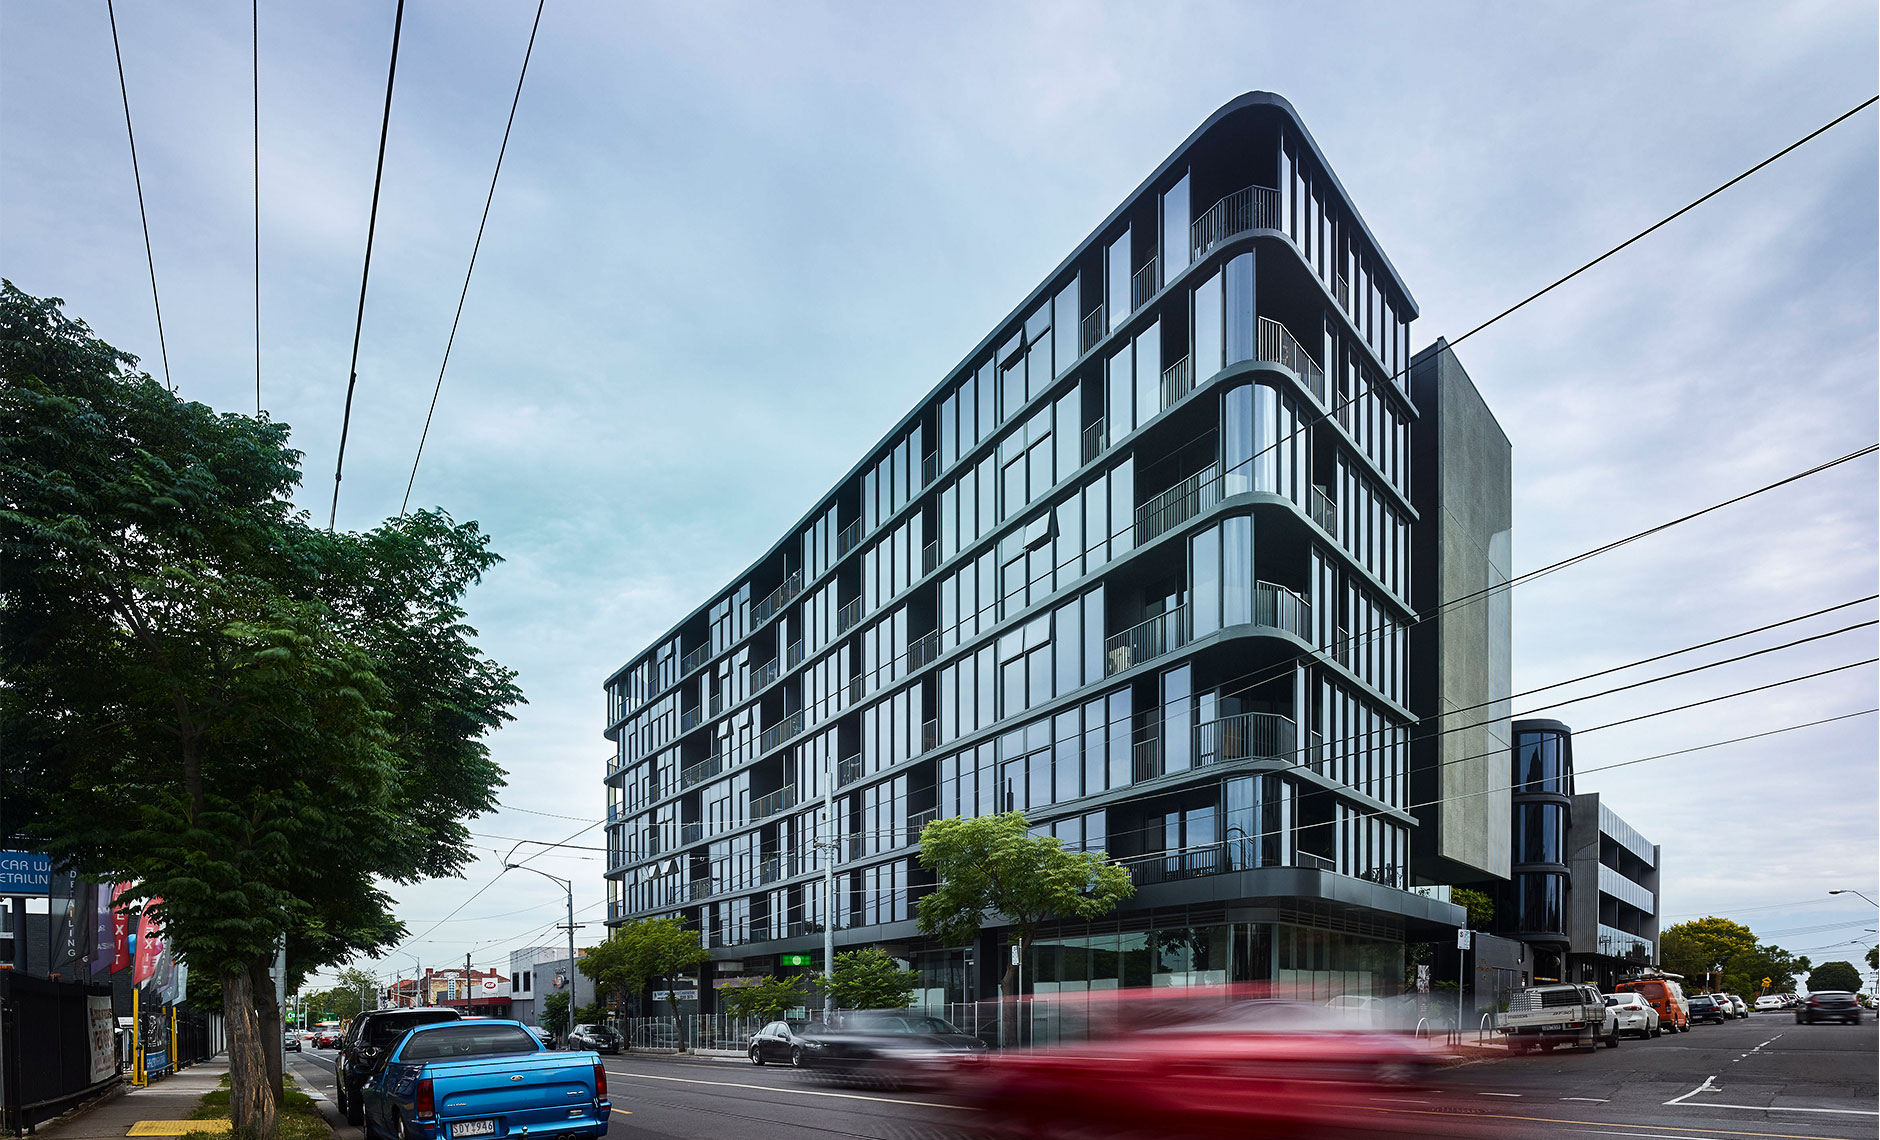 Mixed Use project in Essendon, VIC